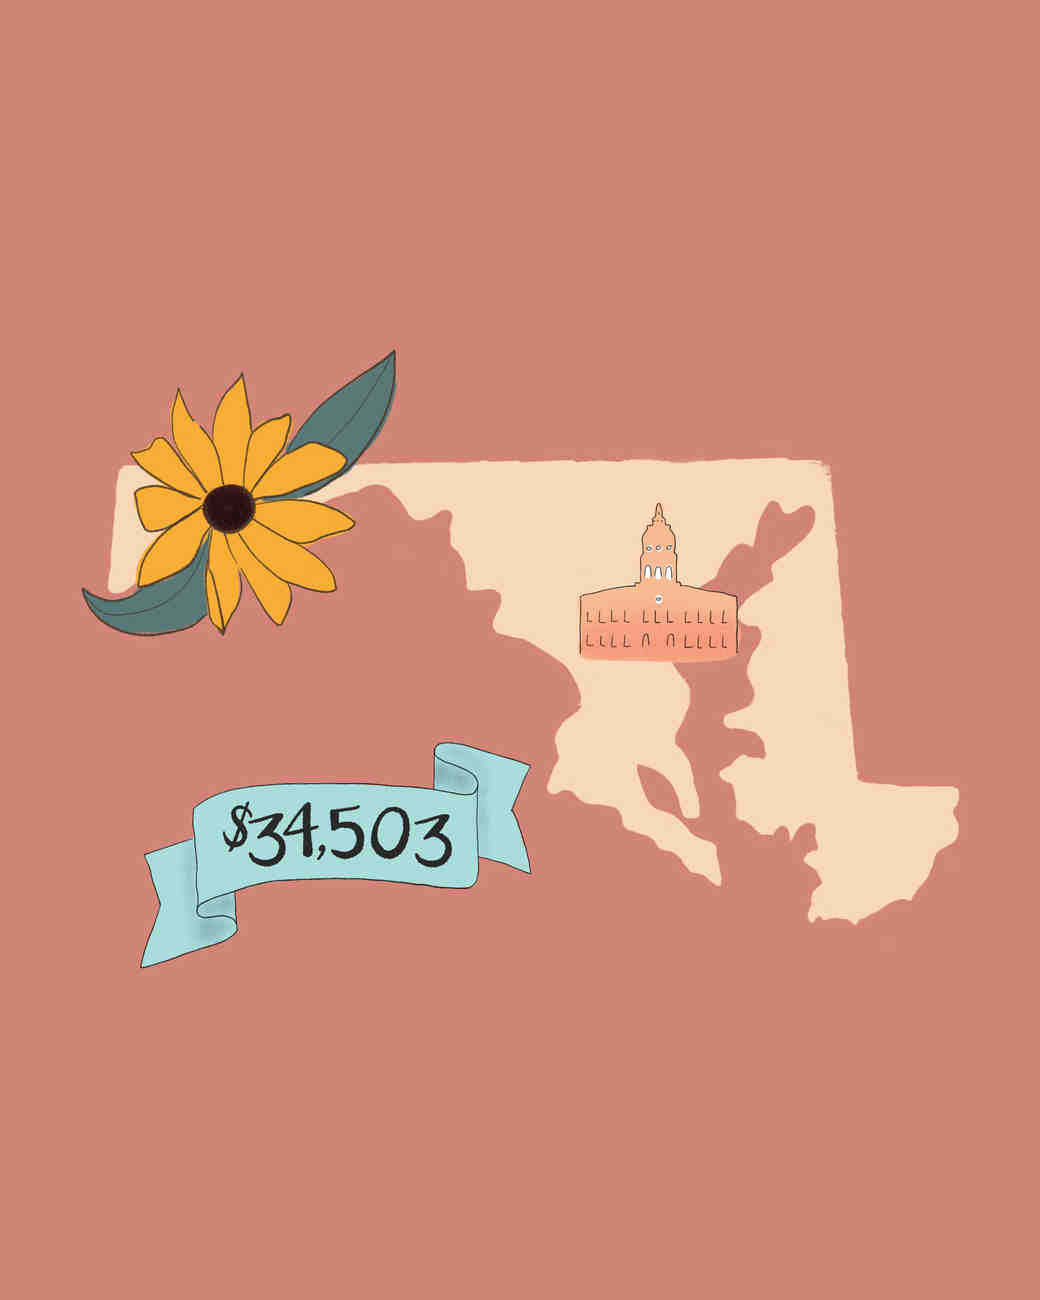 state wedding costs illustration maryland